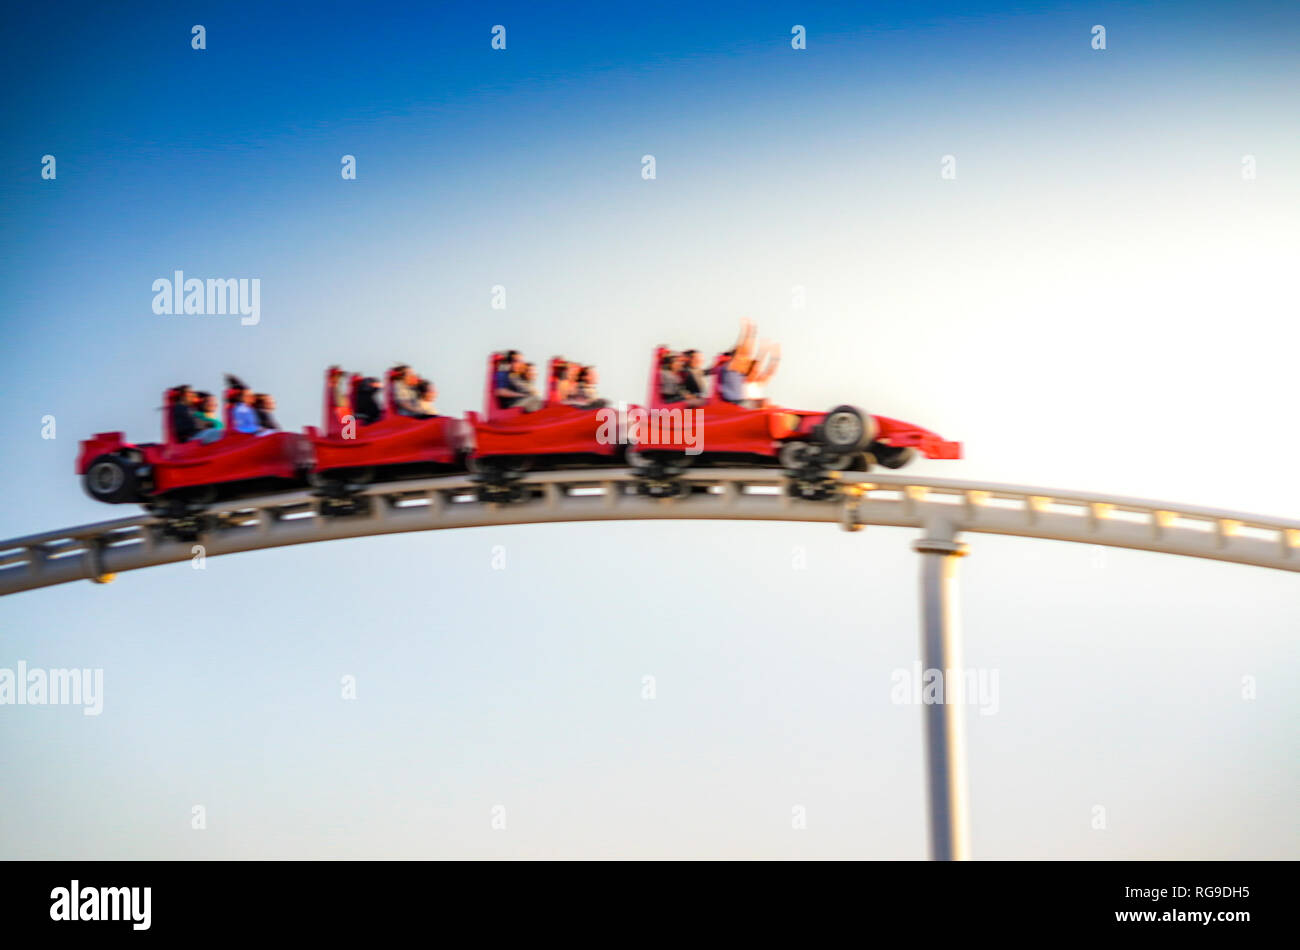 Scenic view of Formula Rossa coaster in Ferrari world amusement park in Yas Island, Abu Dhabi. Close up view with motion blur filter - Stock Image